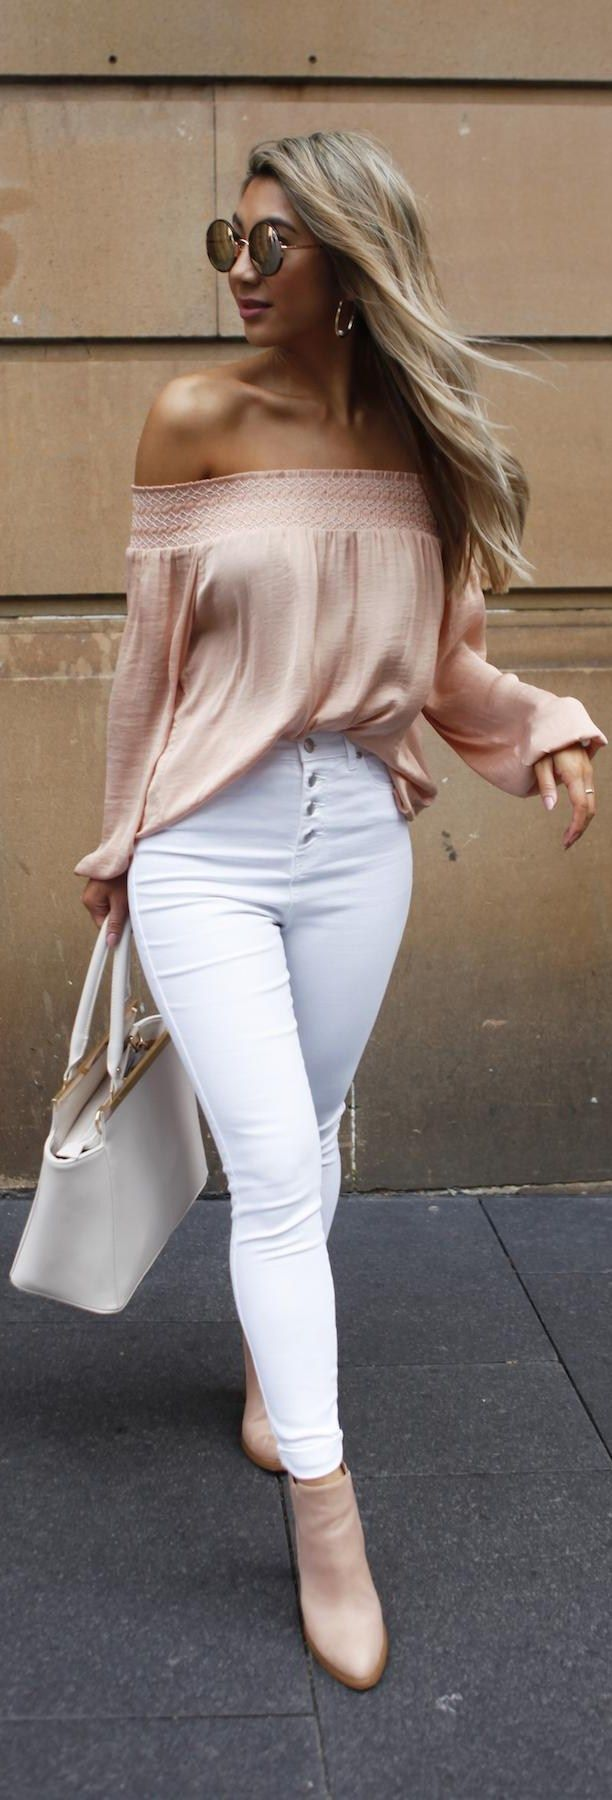 The Peach Box // Fashion Trend by Fashion And Sounds